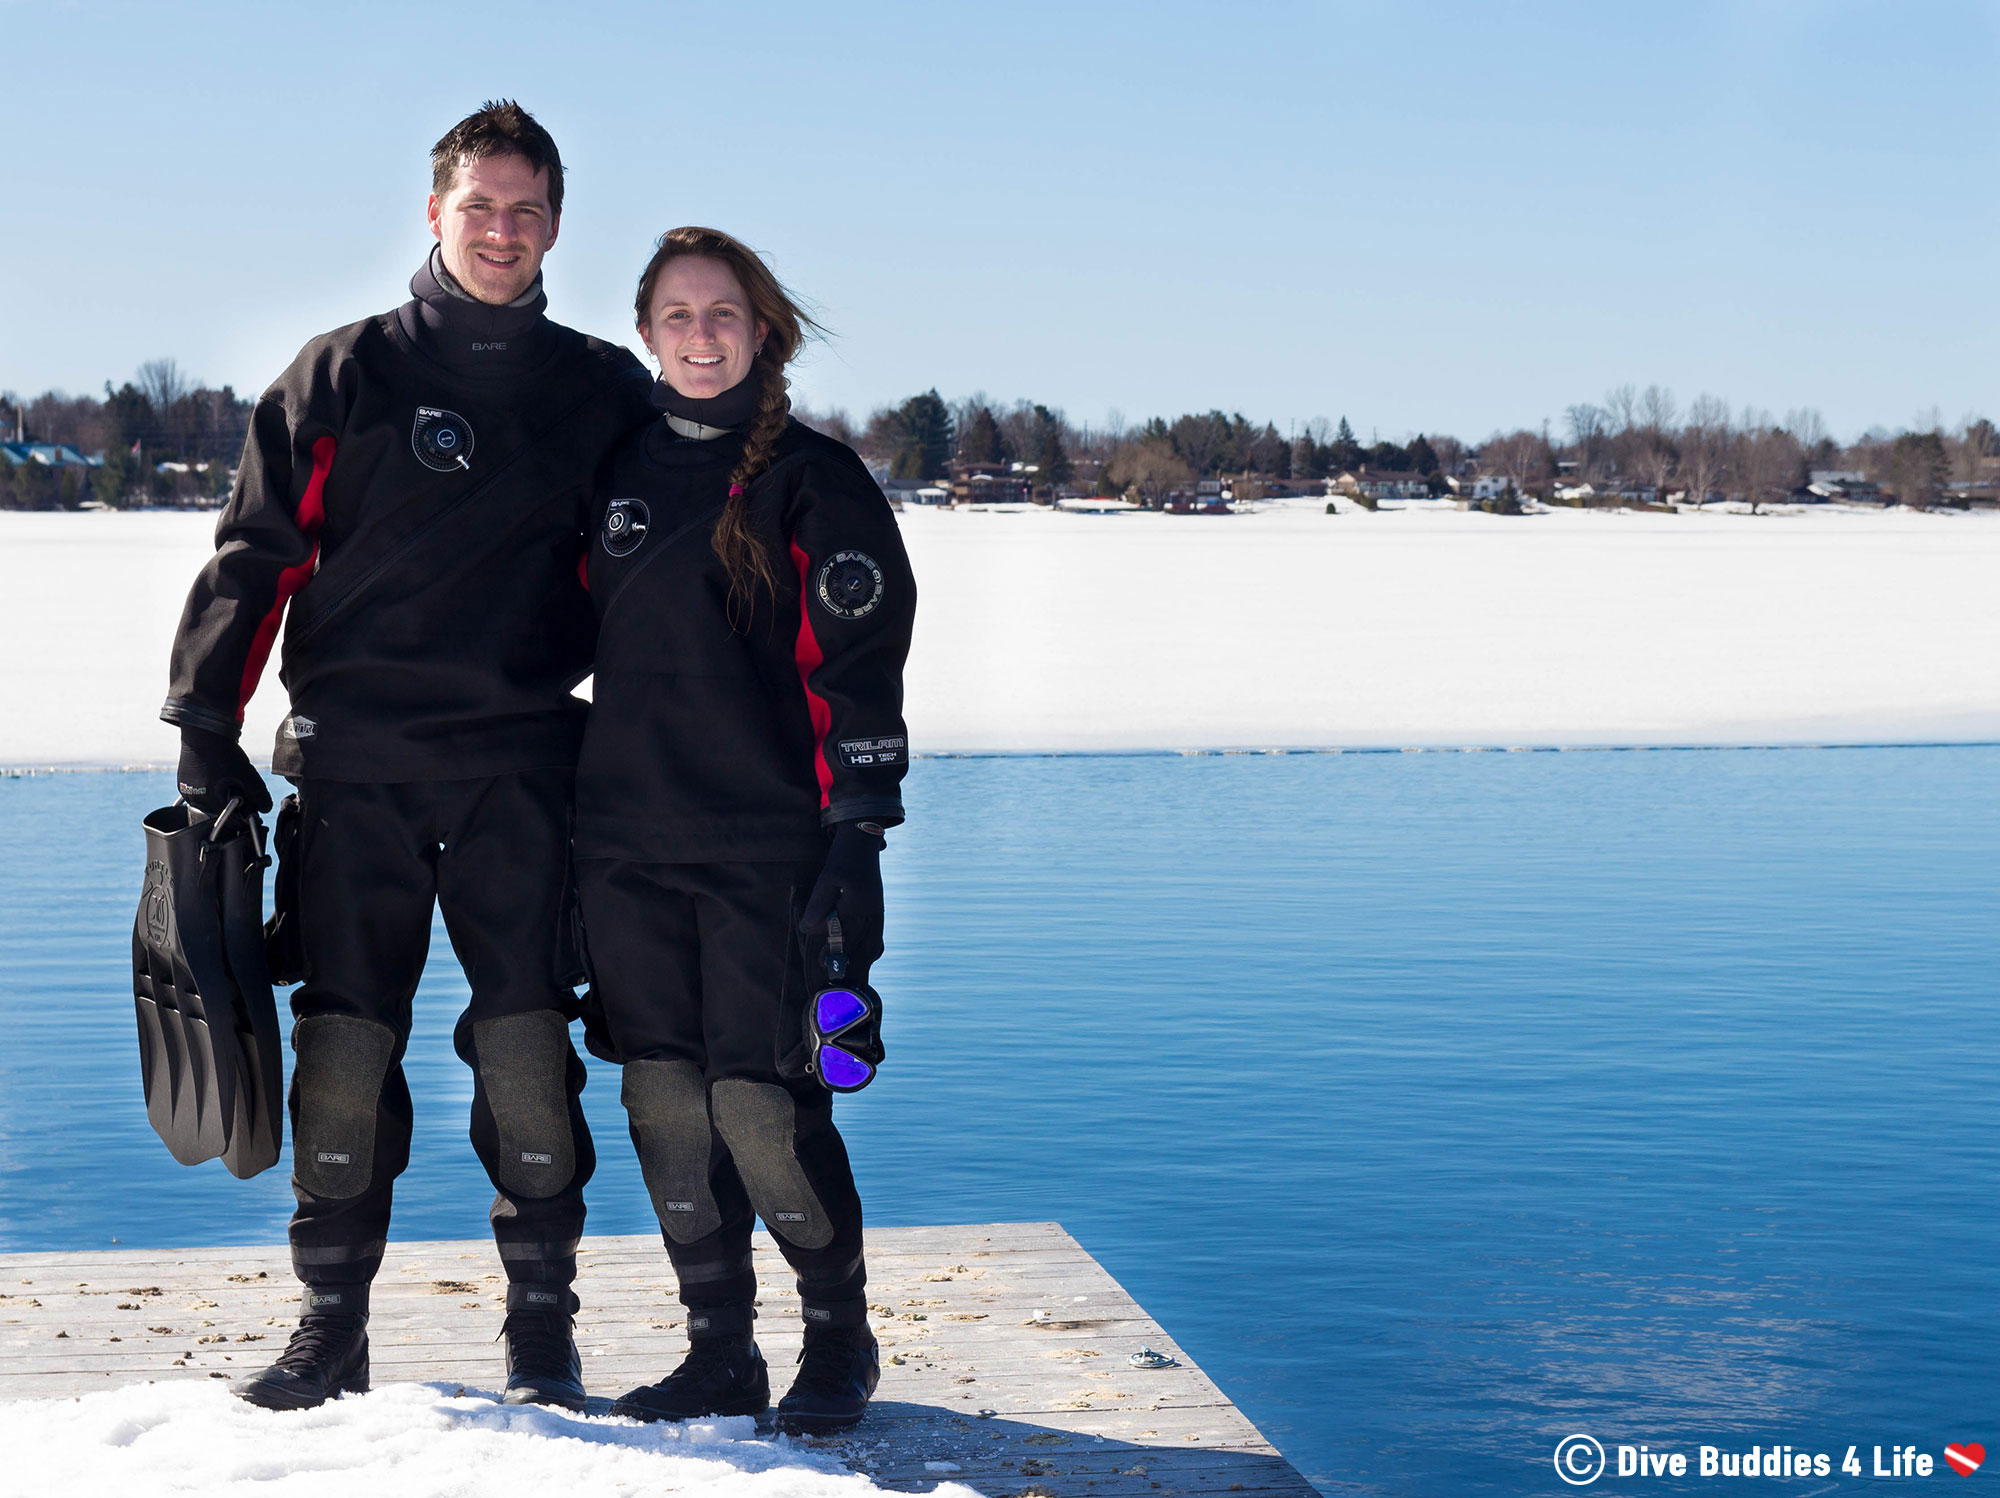 Ali And Joey In Drysuits Scuba Diving North Bay, Ontario